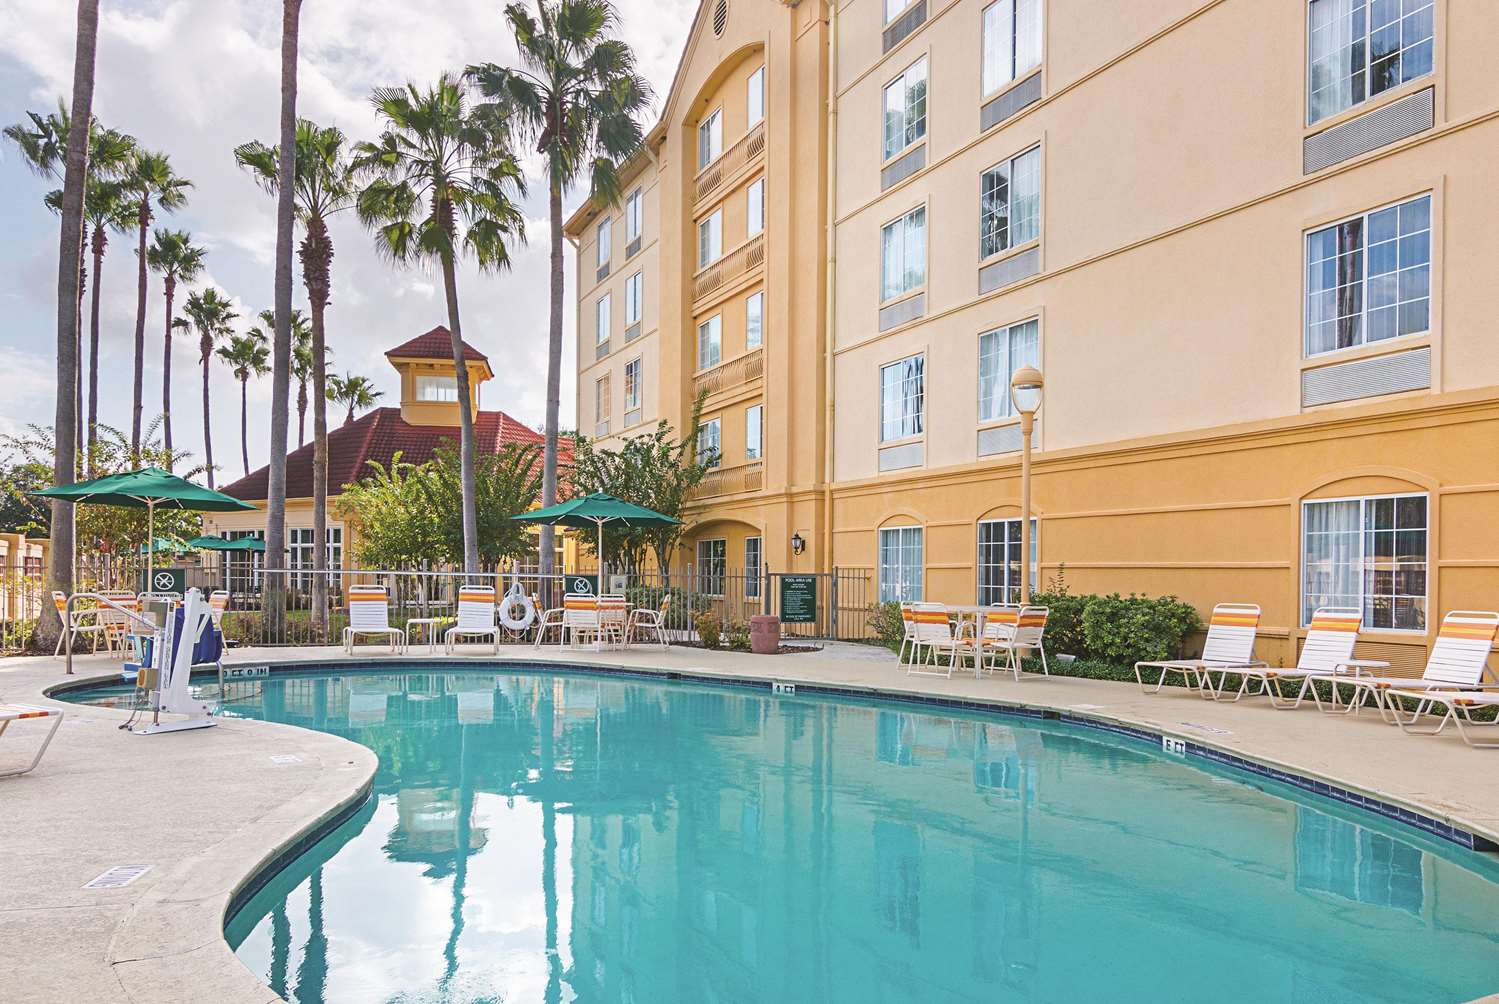 Pool - La Quinta Inn & Suites Airport North Orlando